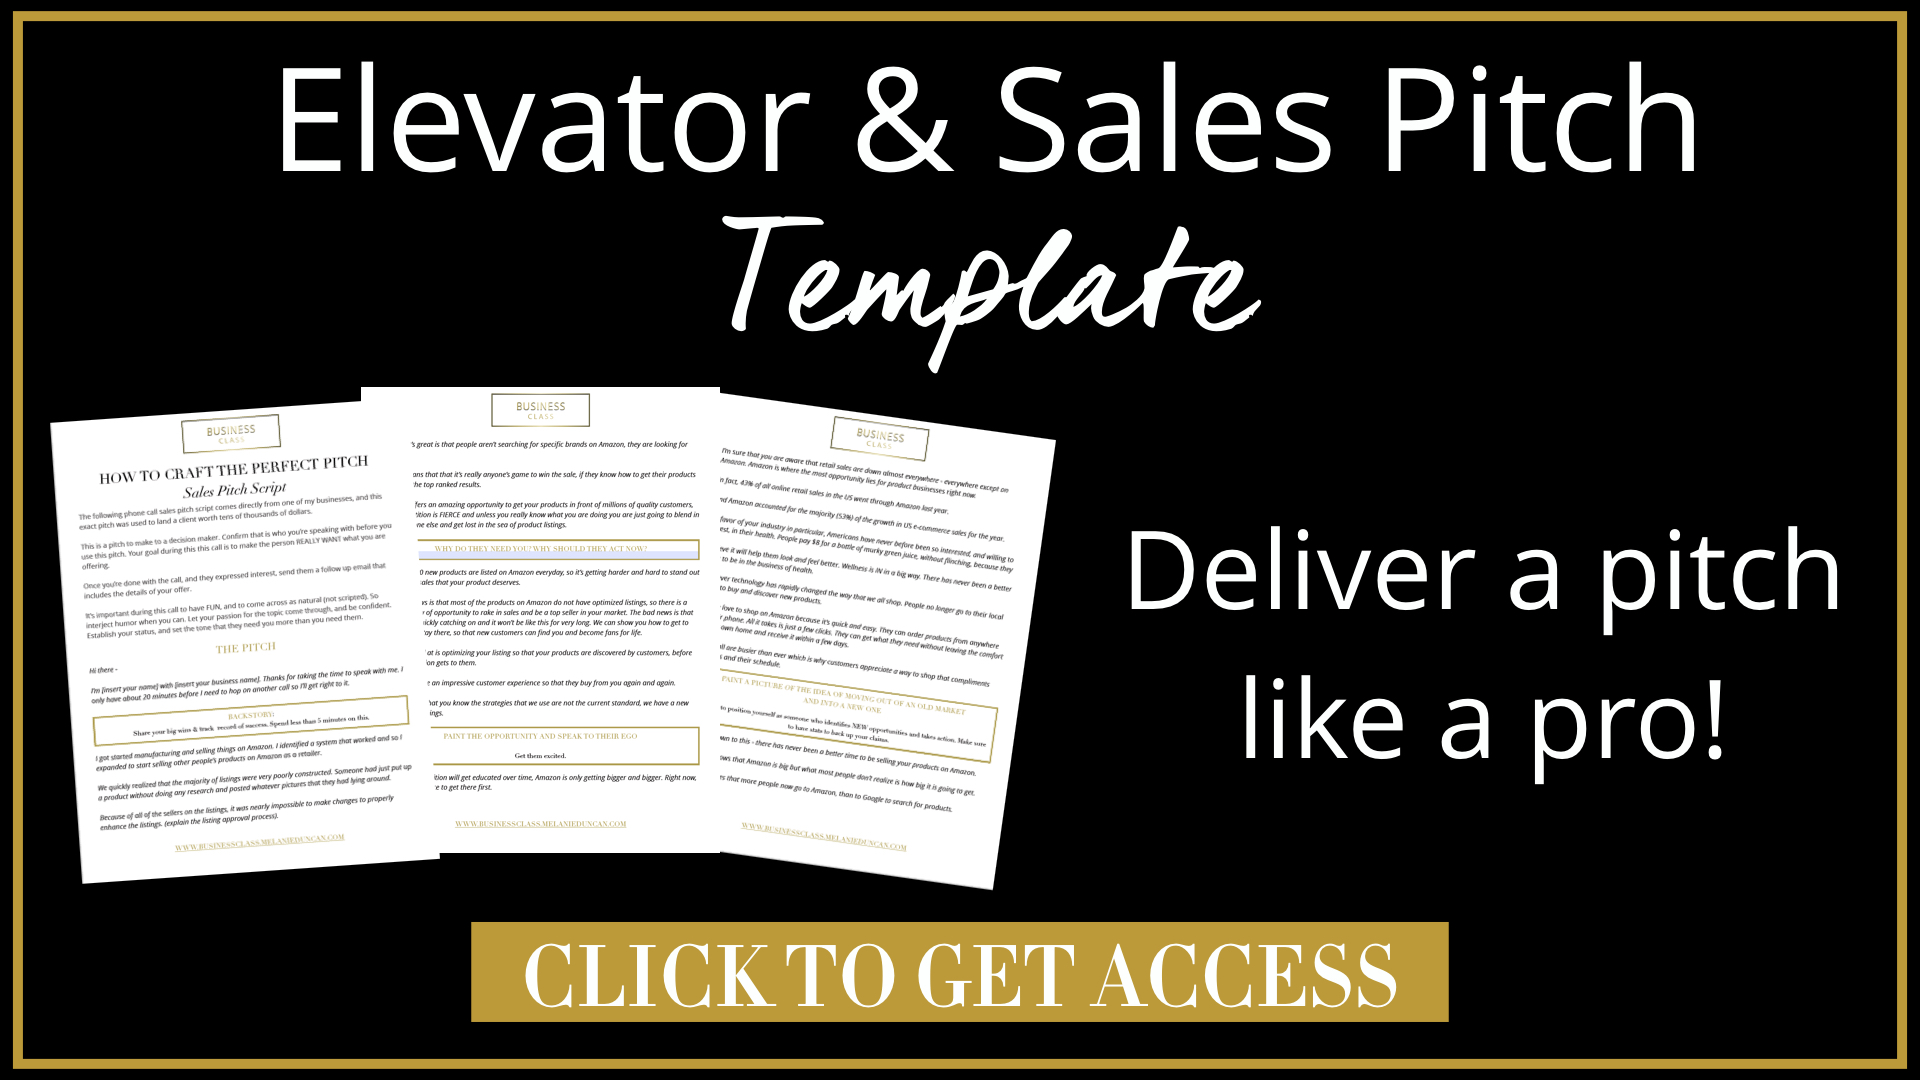 12 Tips To Craft An Elevator Pitch That Makes An Impact